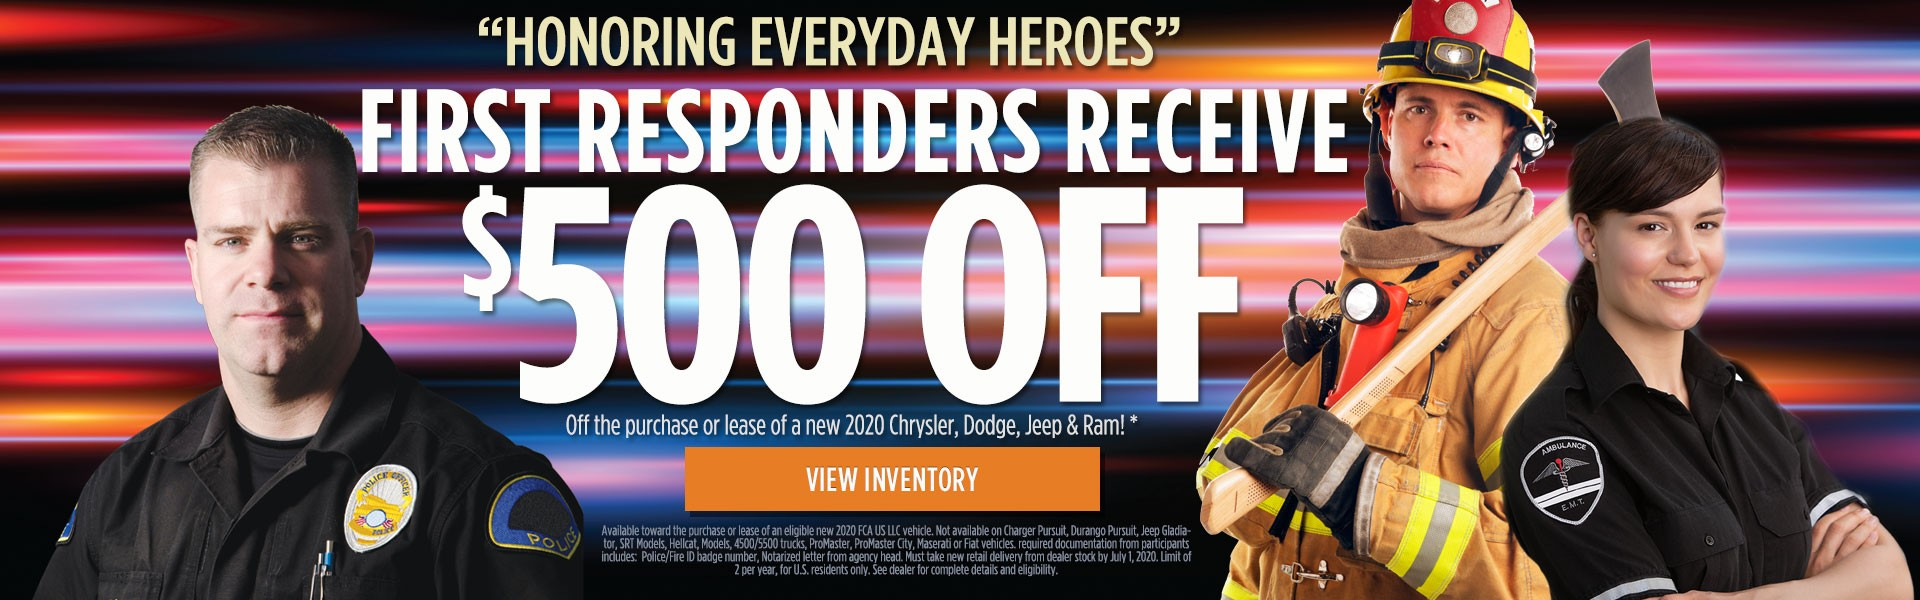 First Responders Receive $500